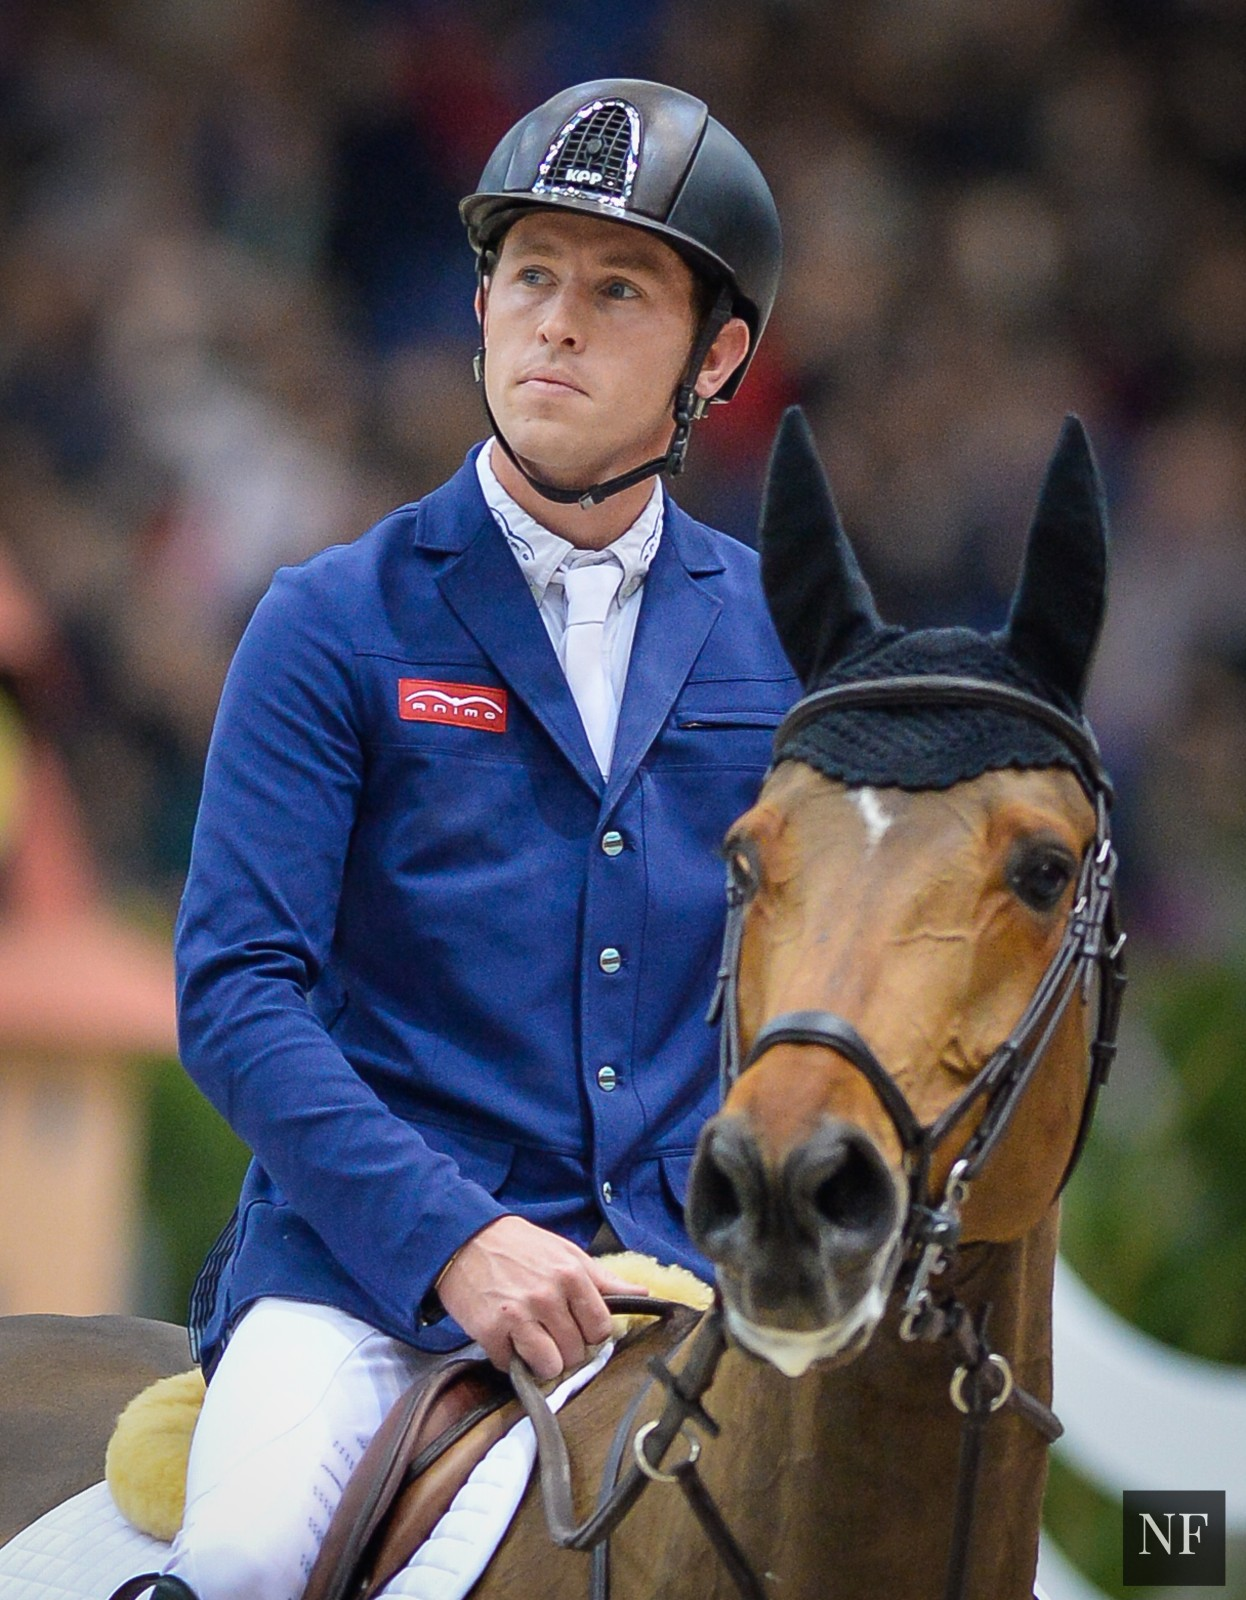 Horse Times Egypt: Equestrian Magazine :Riders Blog :NO RIO OLYMPICS FOR THE HONORED SCOTT BRASH